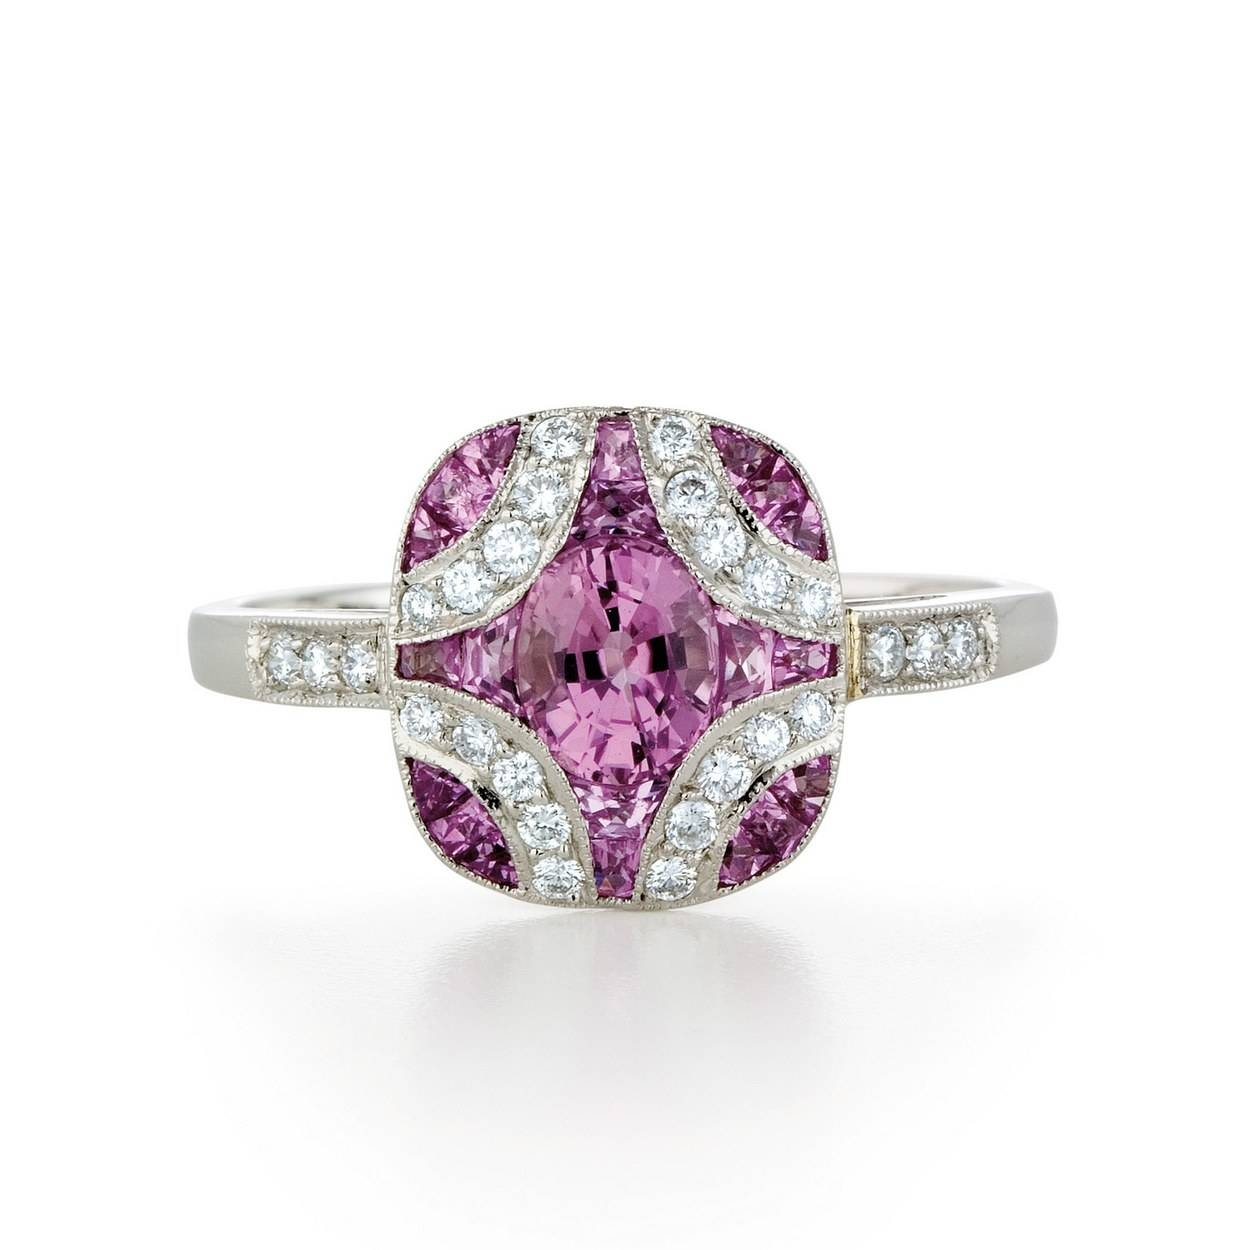 62 Diamond Engagement Rings Under $5,000 | Glamour With Regard To Pink And Diamond Engagement Rings (View 1 of 15)